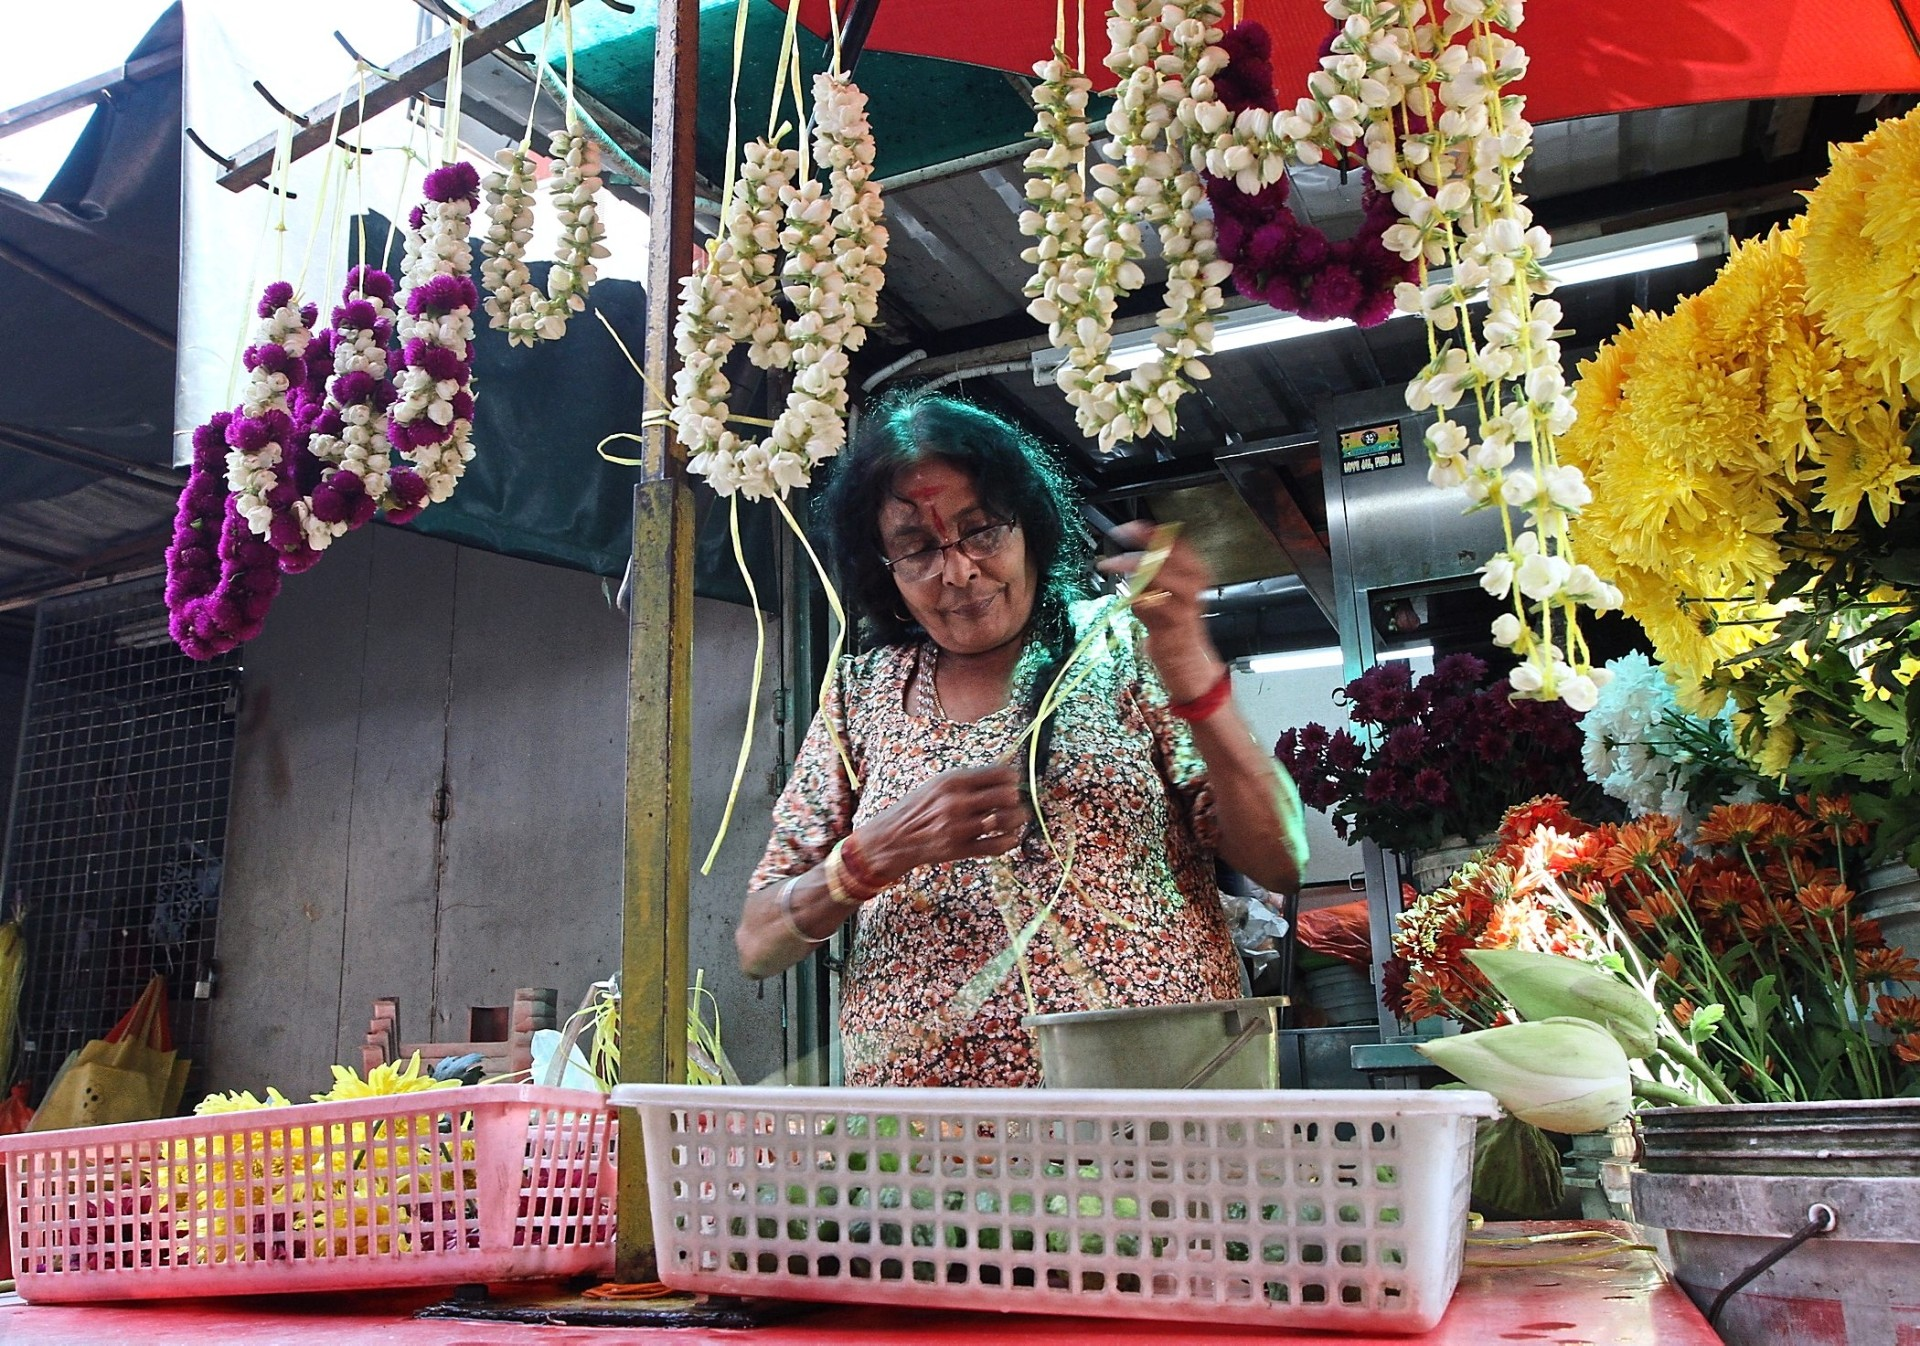 One of many stalls selling fresh flowers along Jalan Hang Lekir.